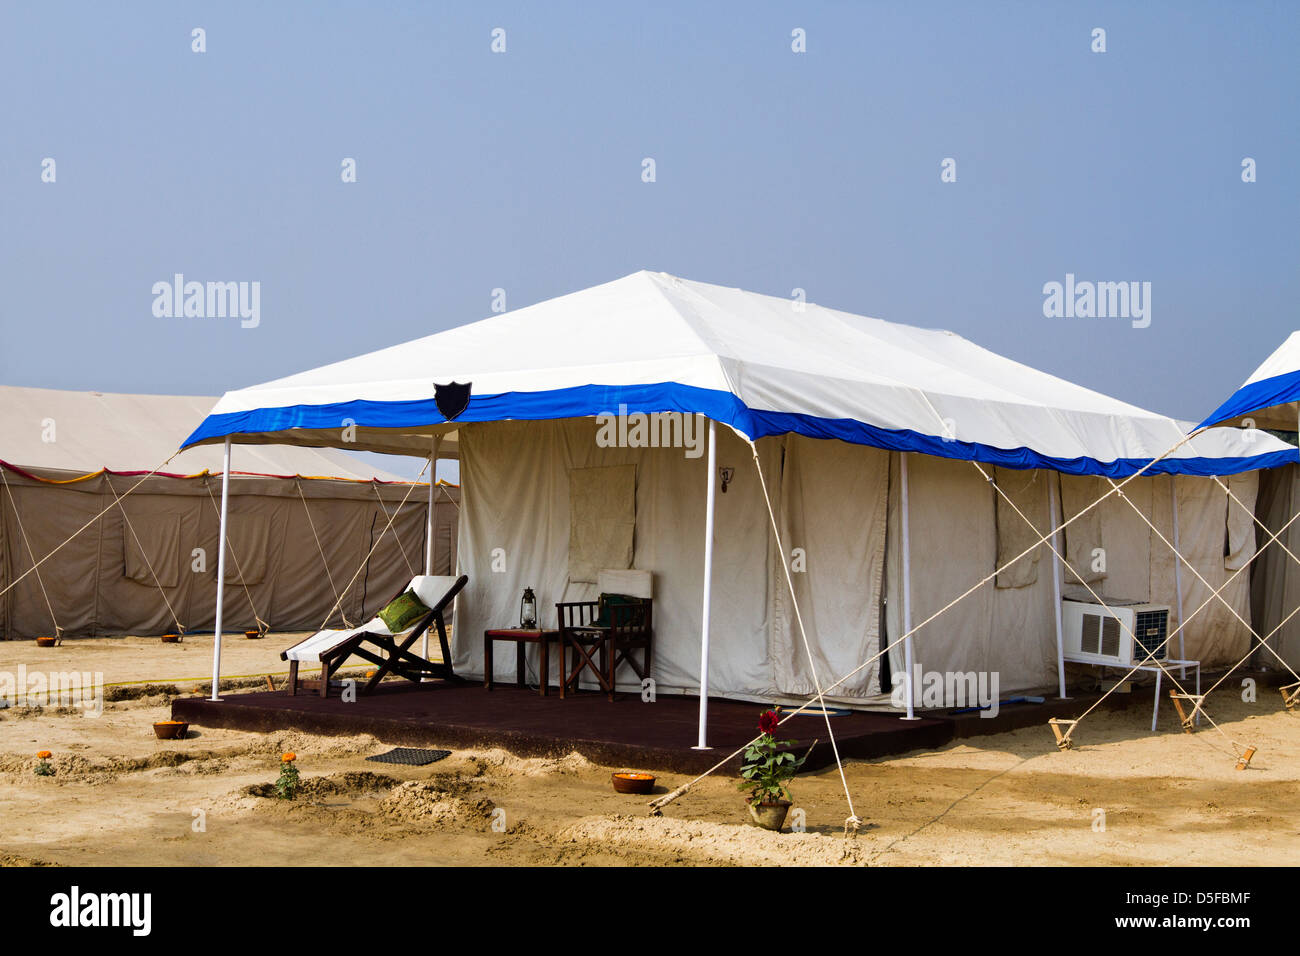 Temporary tents in Kumbh Mela Allahabad Uttar Pradesh India & Temporary tents in Kumbh Mela Allahabad Uttar Pradesh India ...